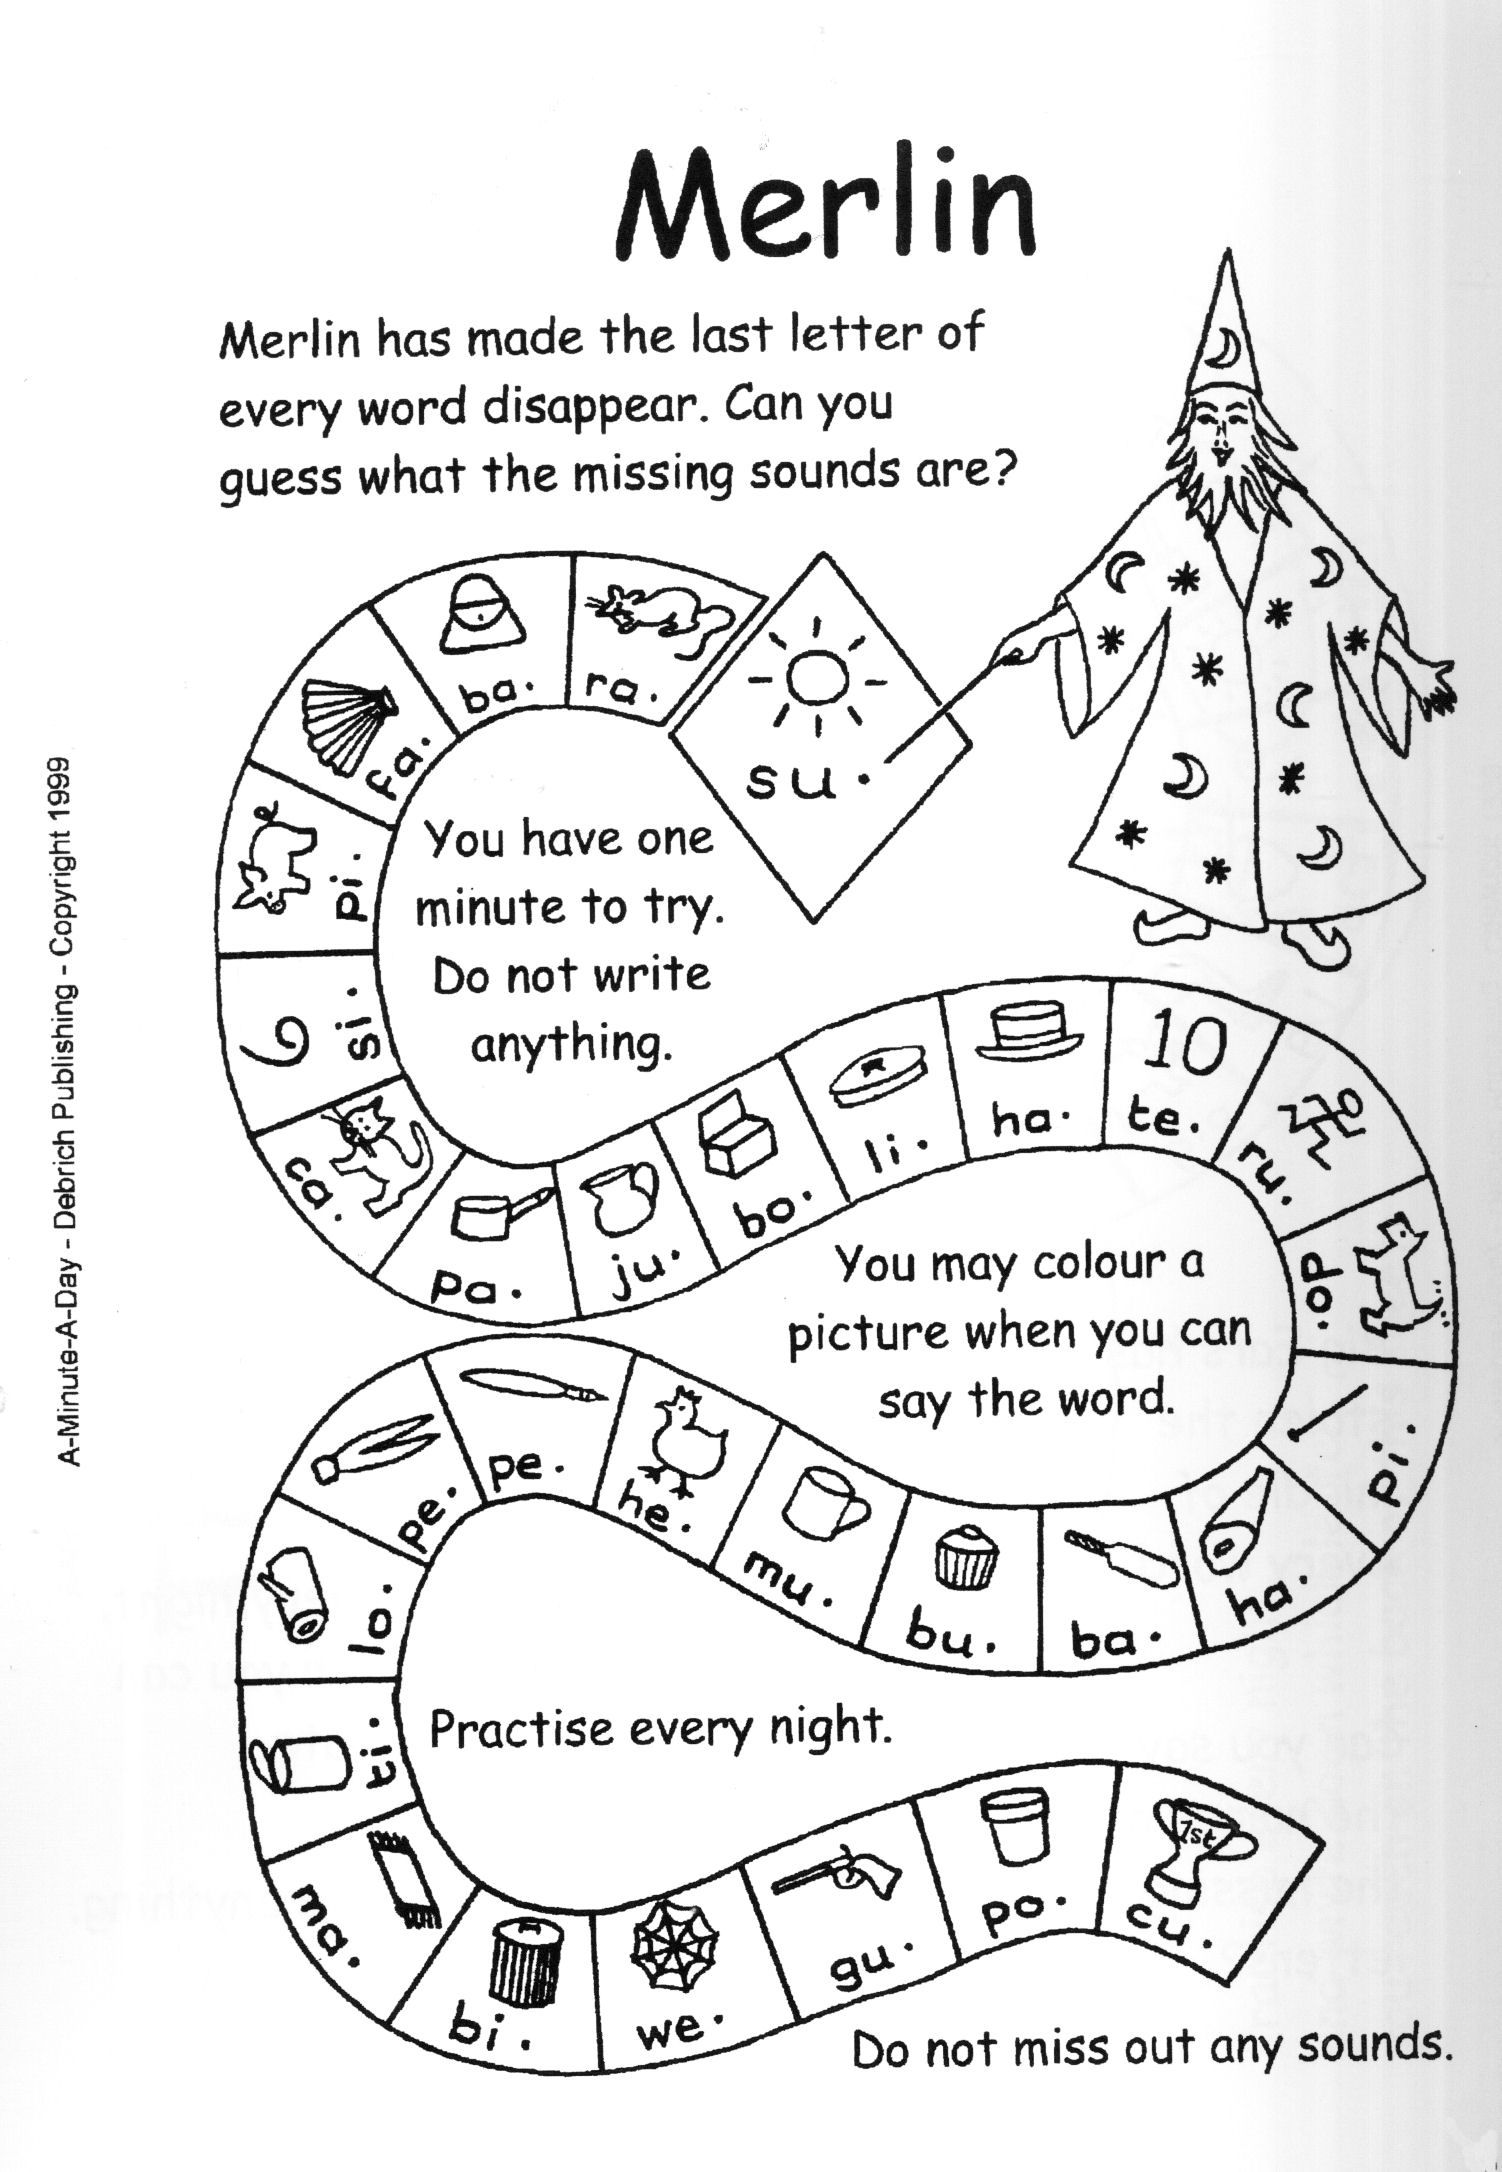 Homework can be fun! 1 minute phonics challenges for